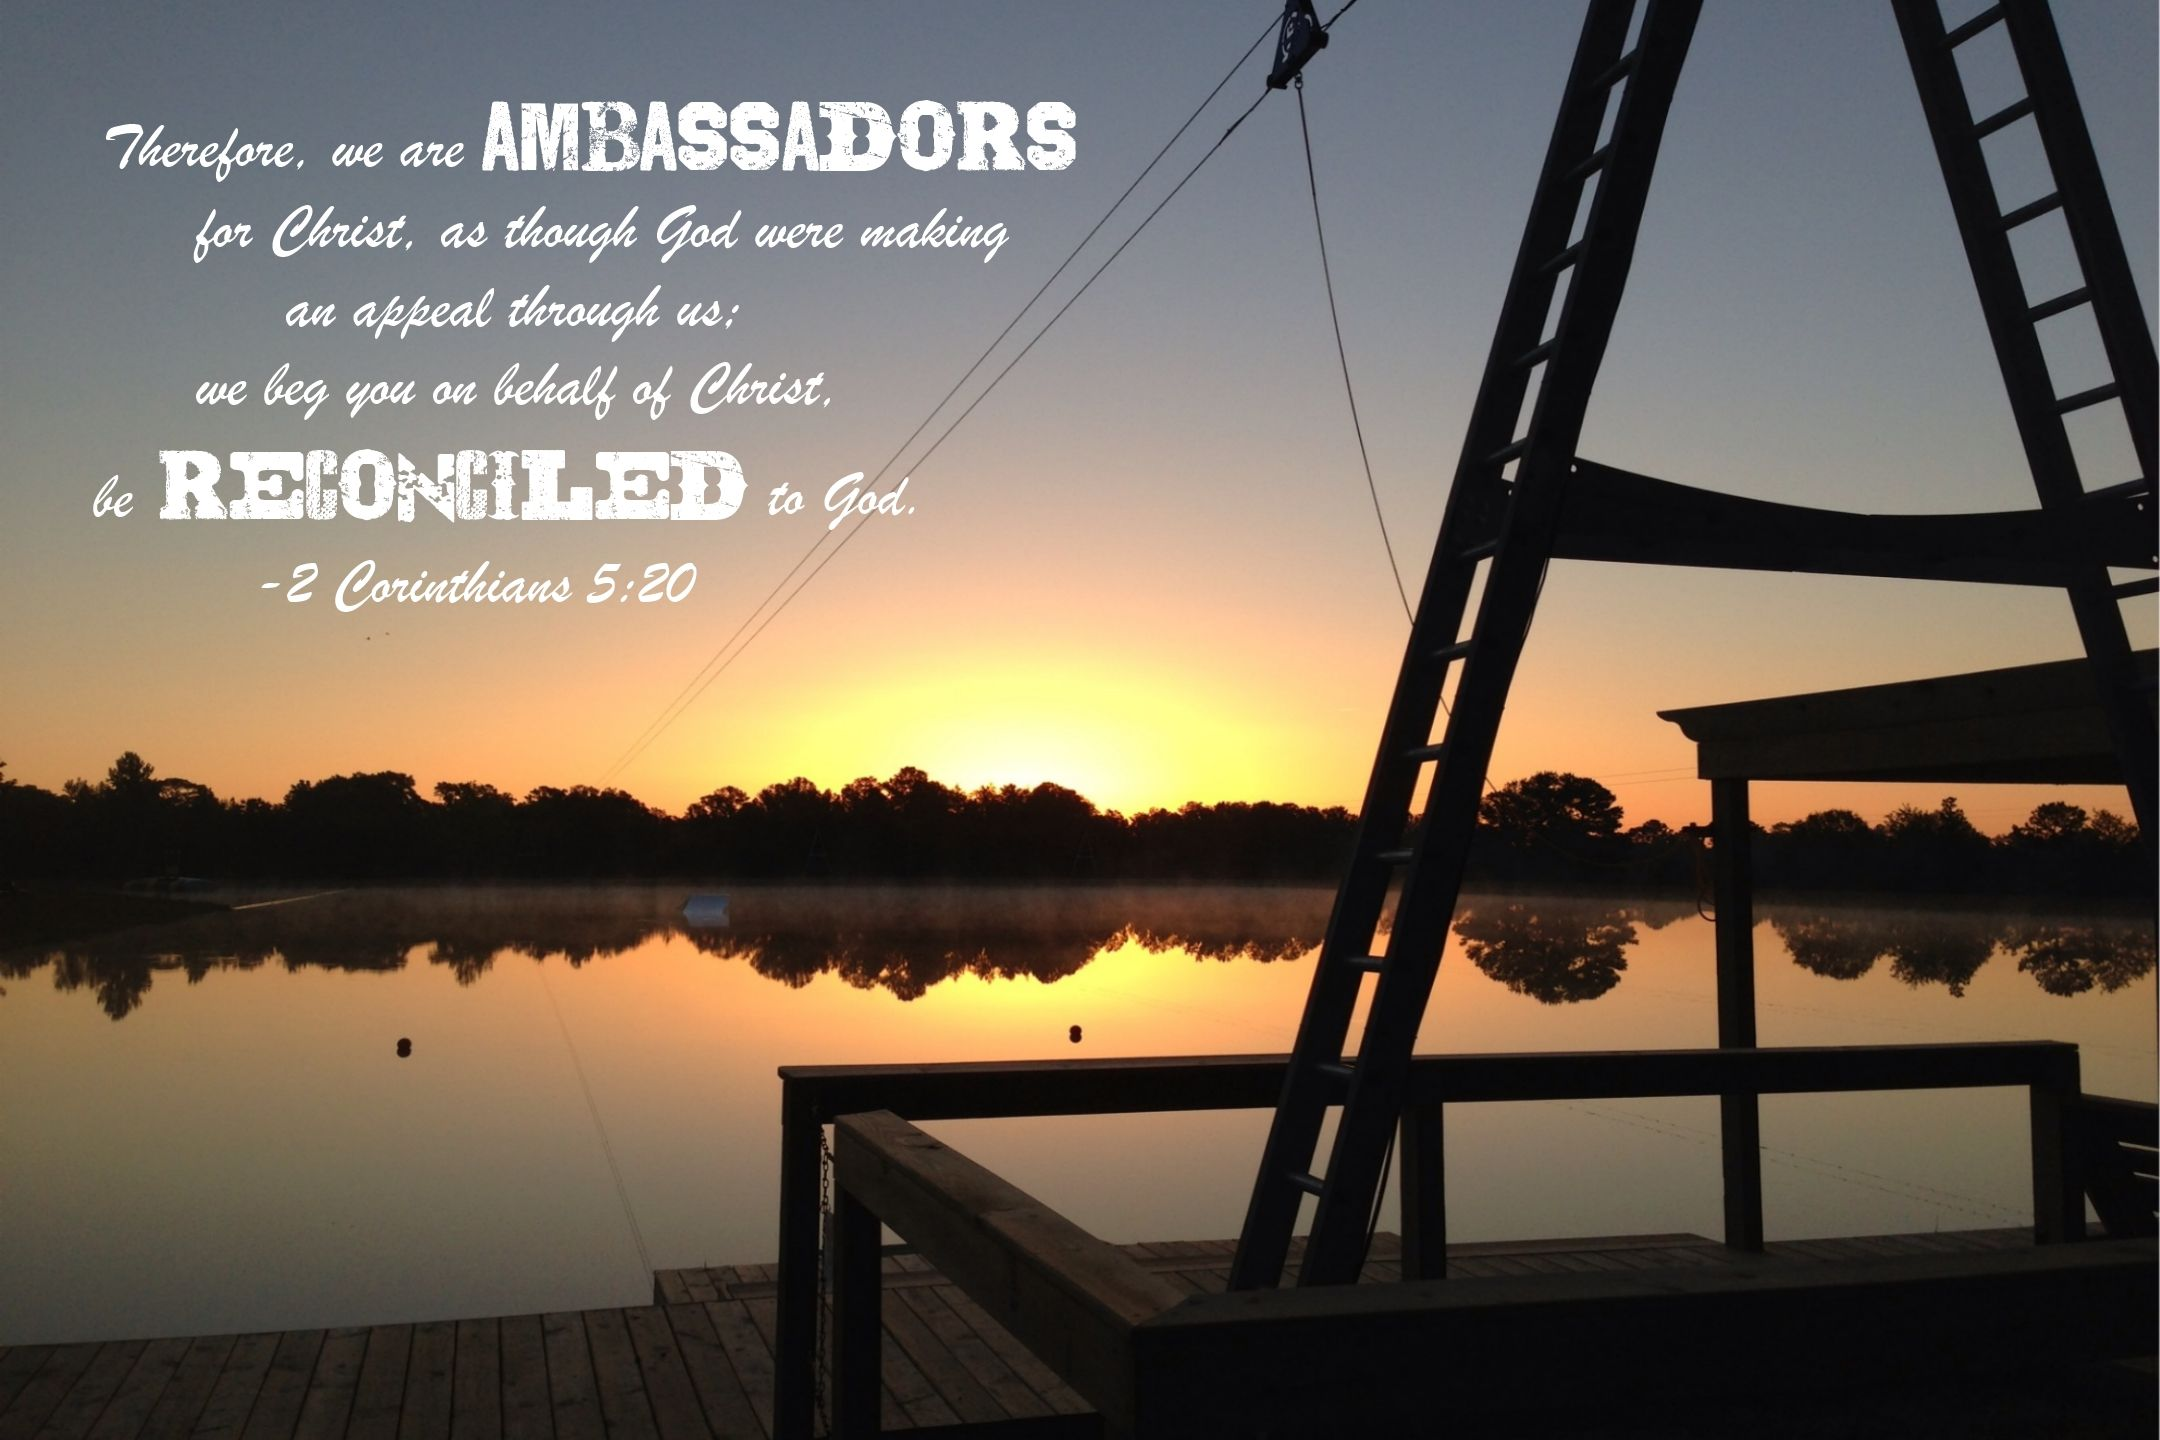 We are ambassadors for Christ.